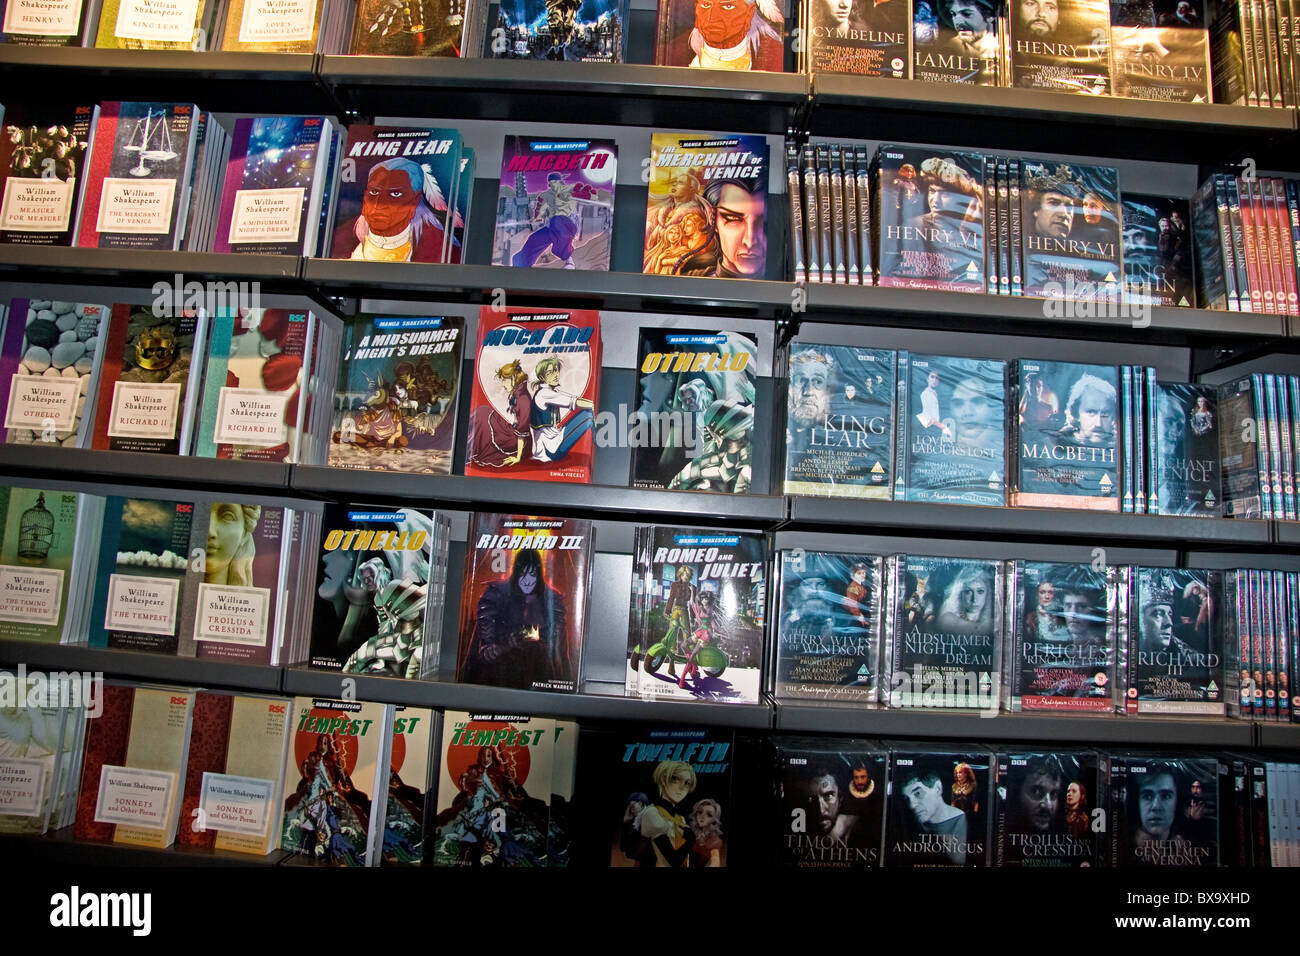 Shakespeare books, Manga books and DVDs on sale in RSC